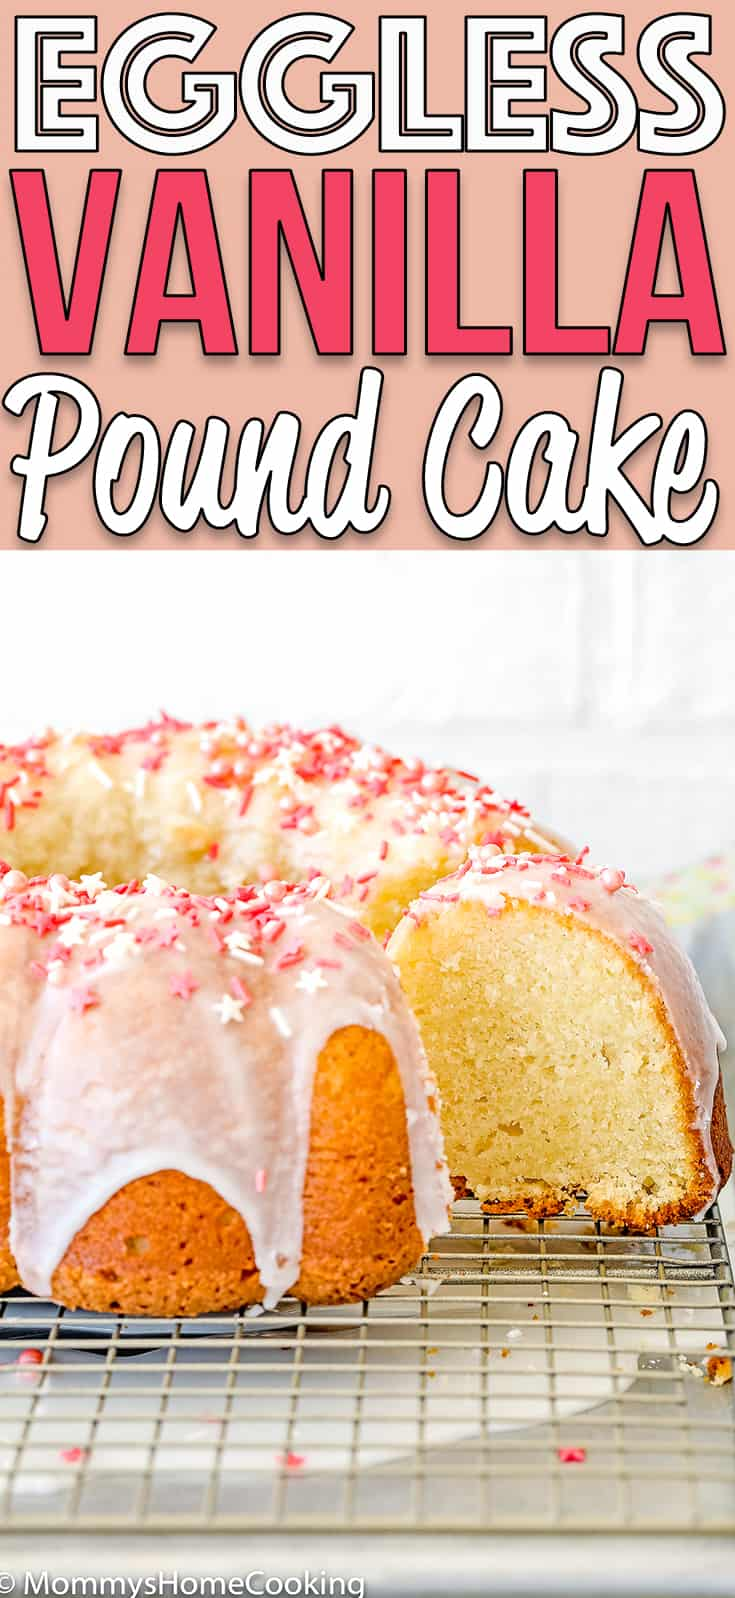 This Easy Eggless Vanilla Pound Cake recipe is easy to make, super moist, and very rich!  Made with simple ingredients, this fine-grained and tender cake will be a guaranteed showstopper whether you serve it. #recipe #eggless #eggfree #egglessbaking easy #poundcake #cake